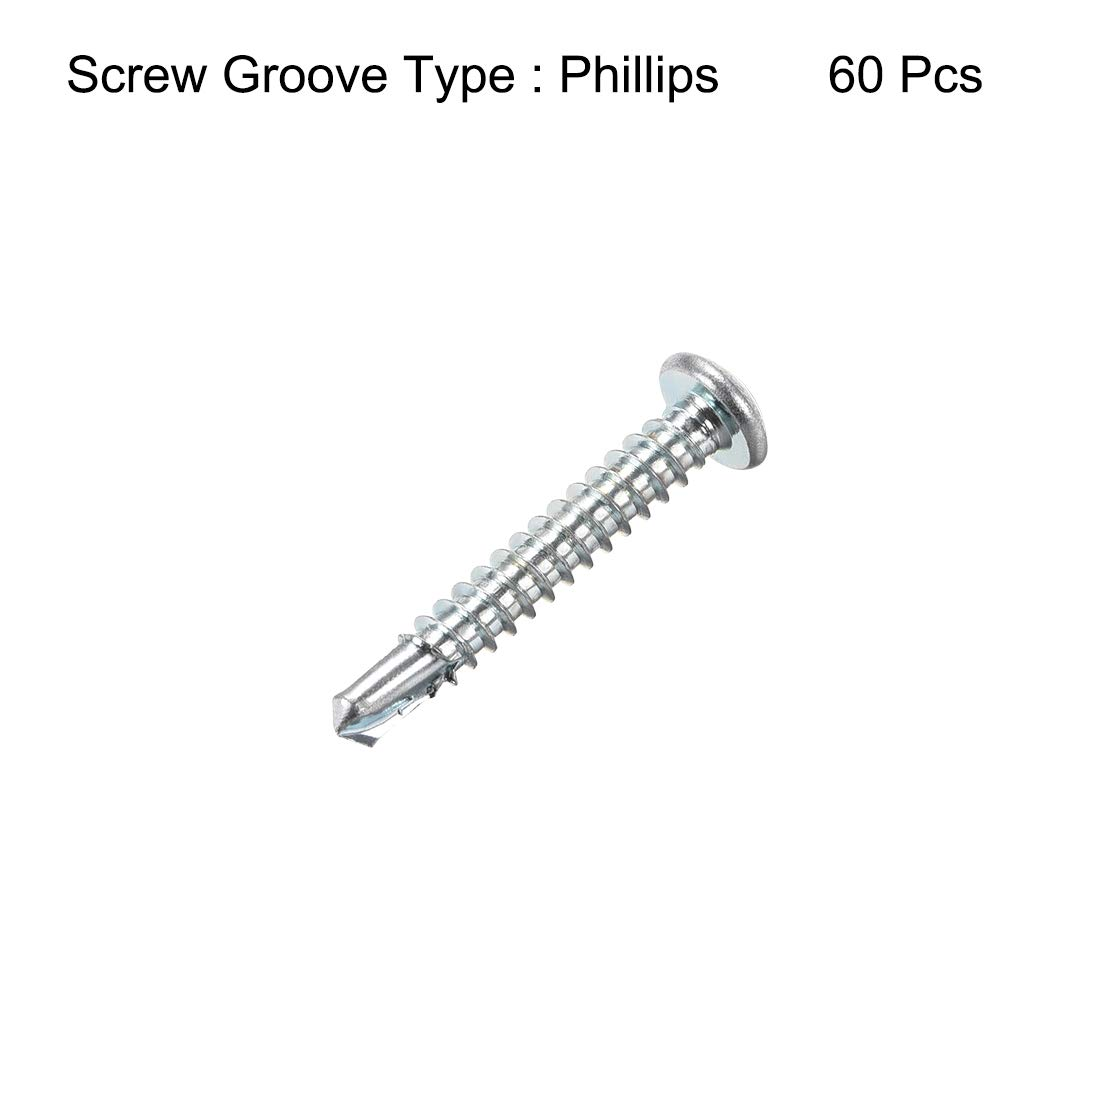 uxcell #10 x 1-1//4 Self Tapping Screws Zinc Plated Carbon Steel Phillips Pan Head Self Drilling Screws 60pcs